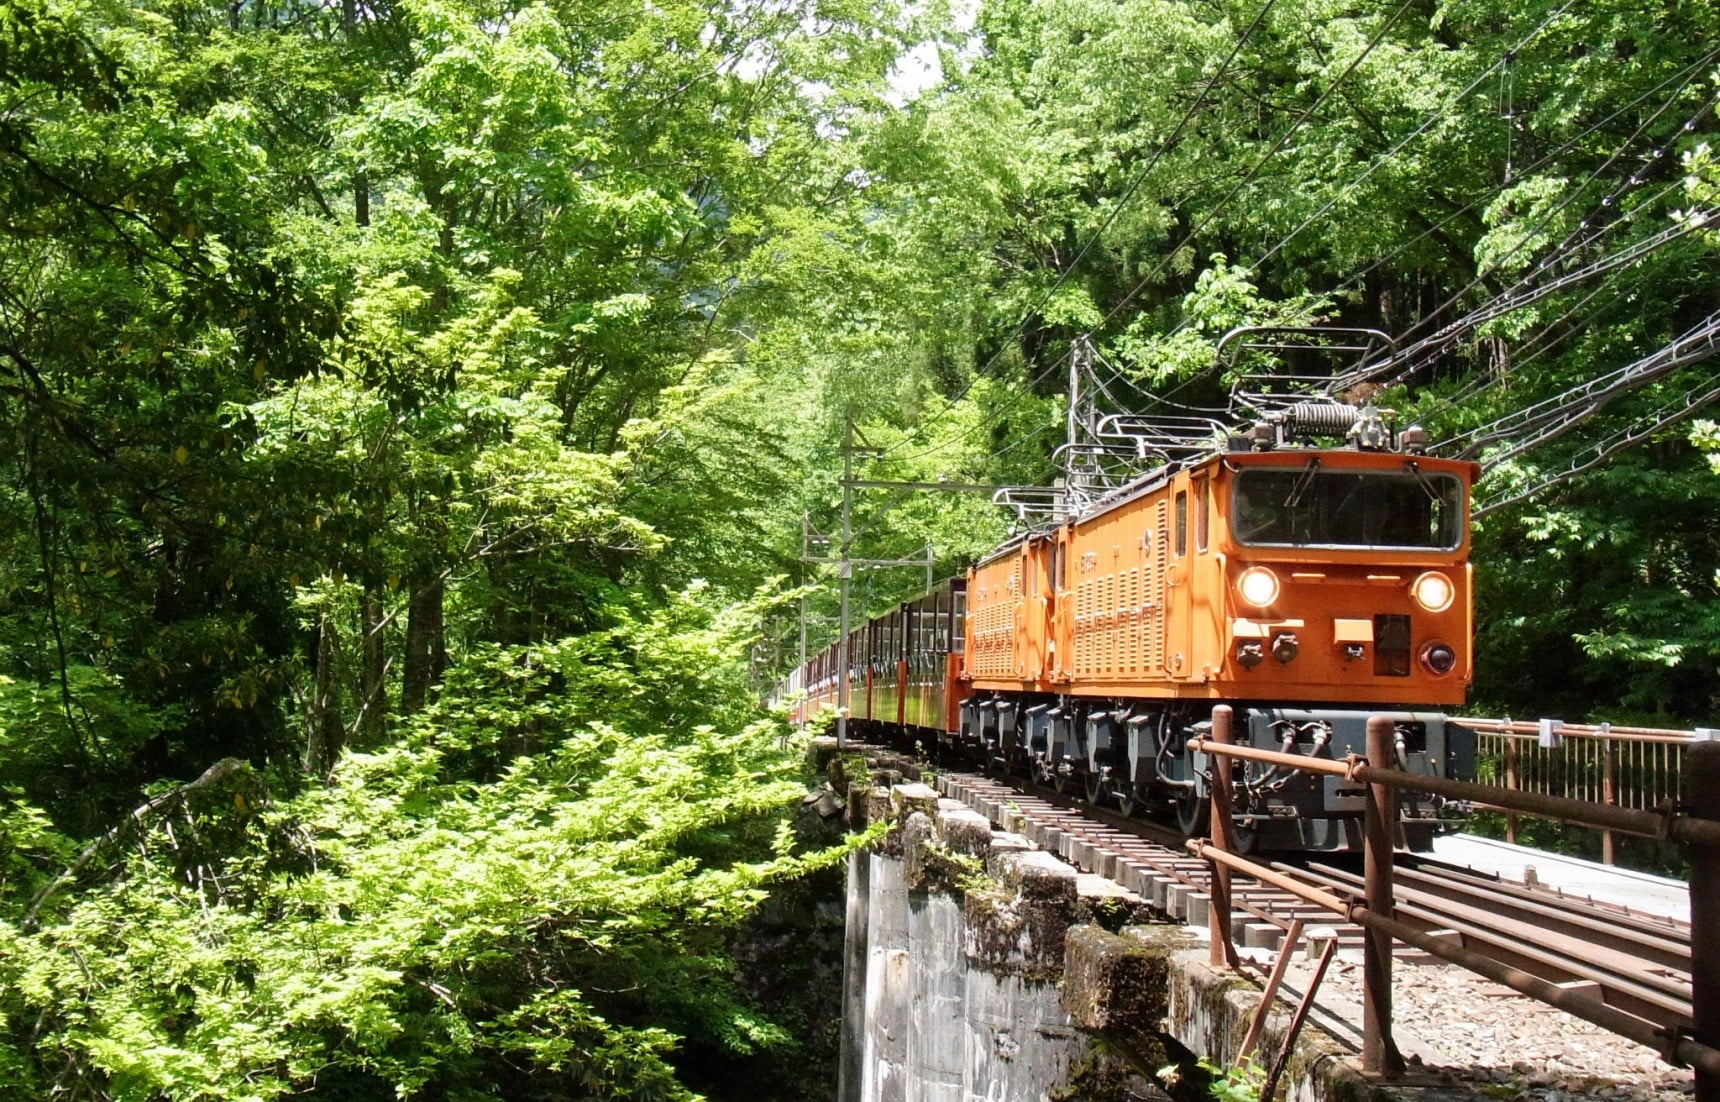 Take the Train through Japan's Deepest Gorge